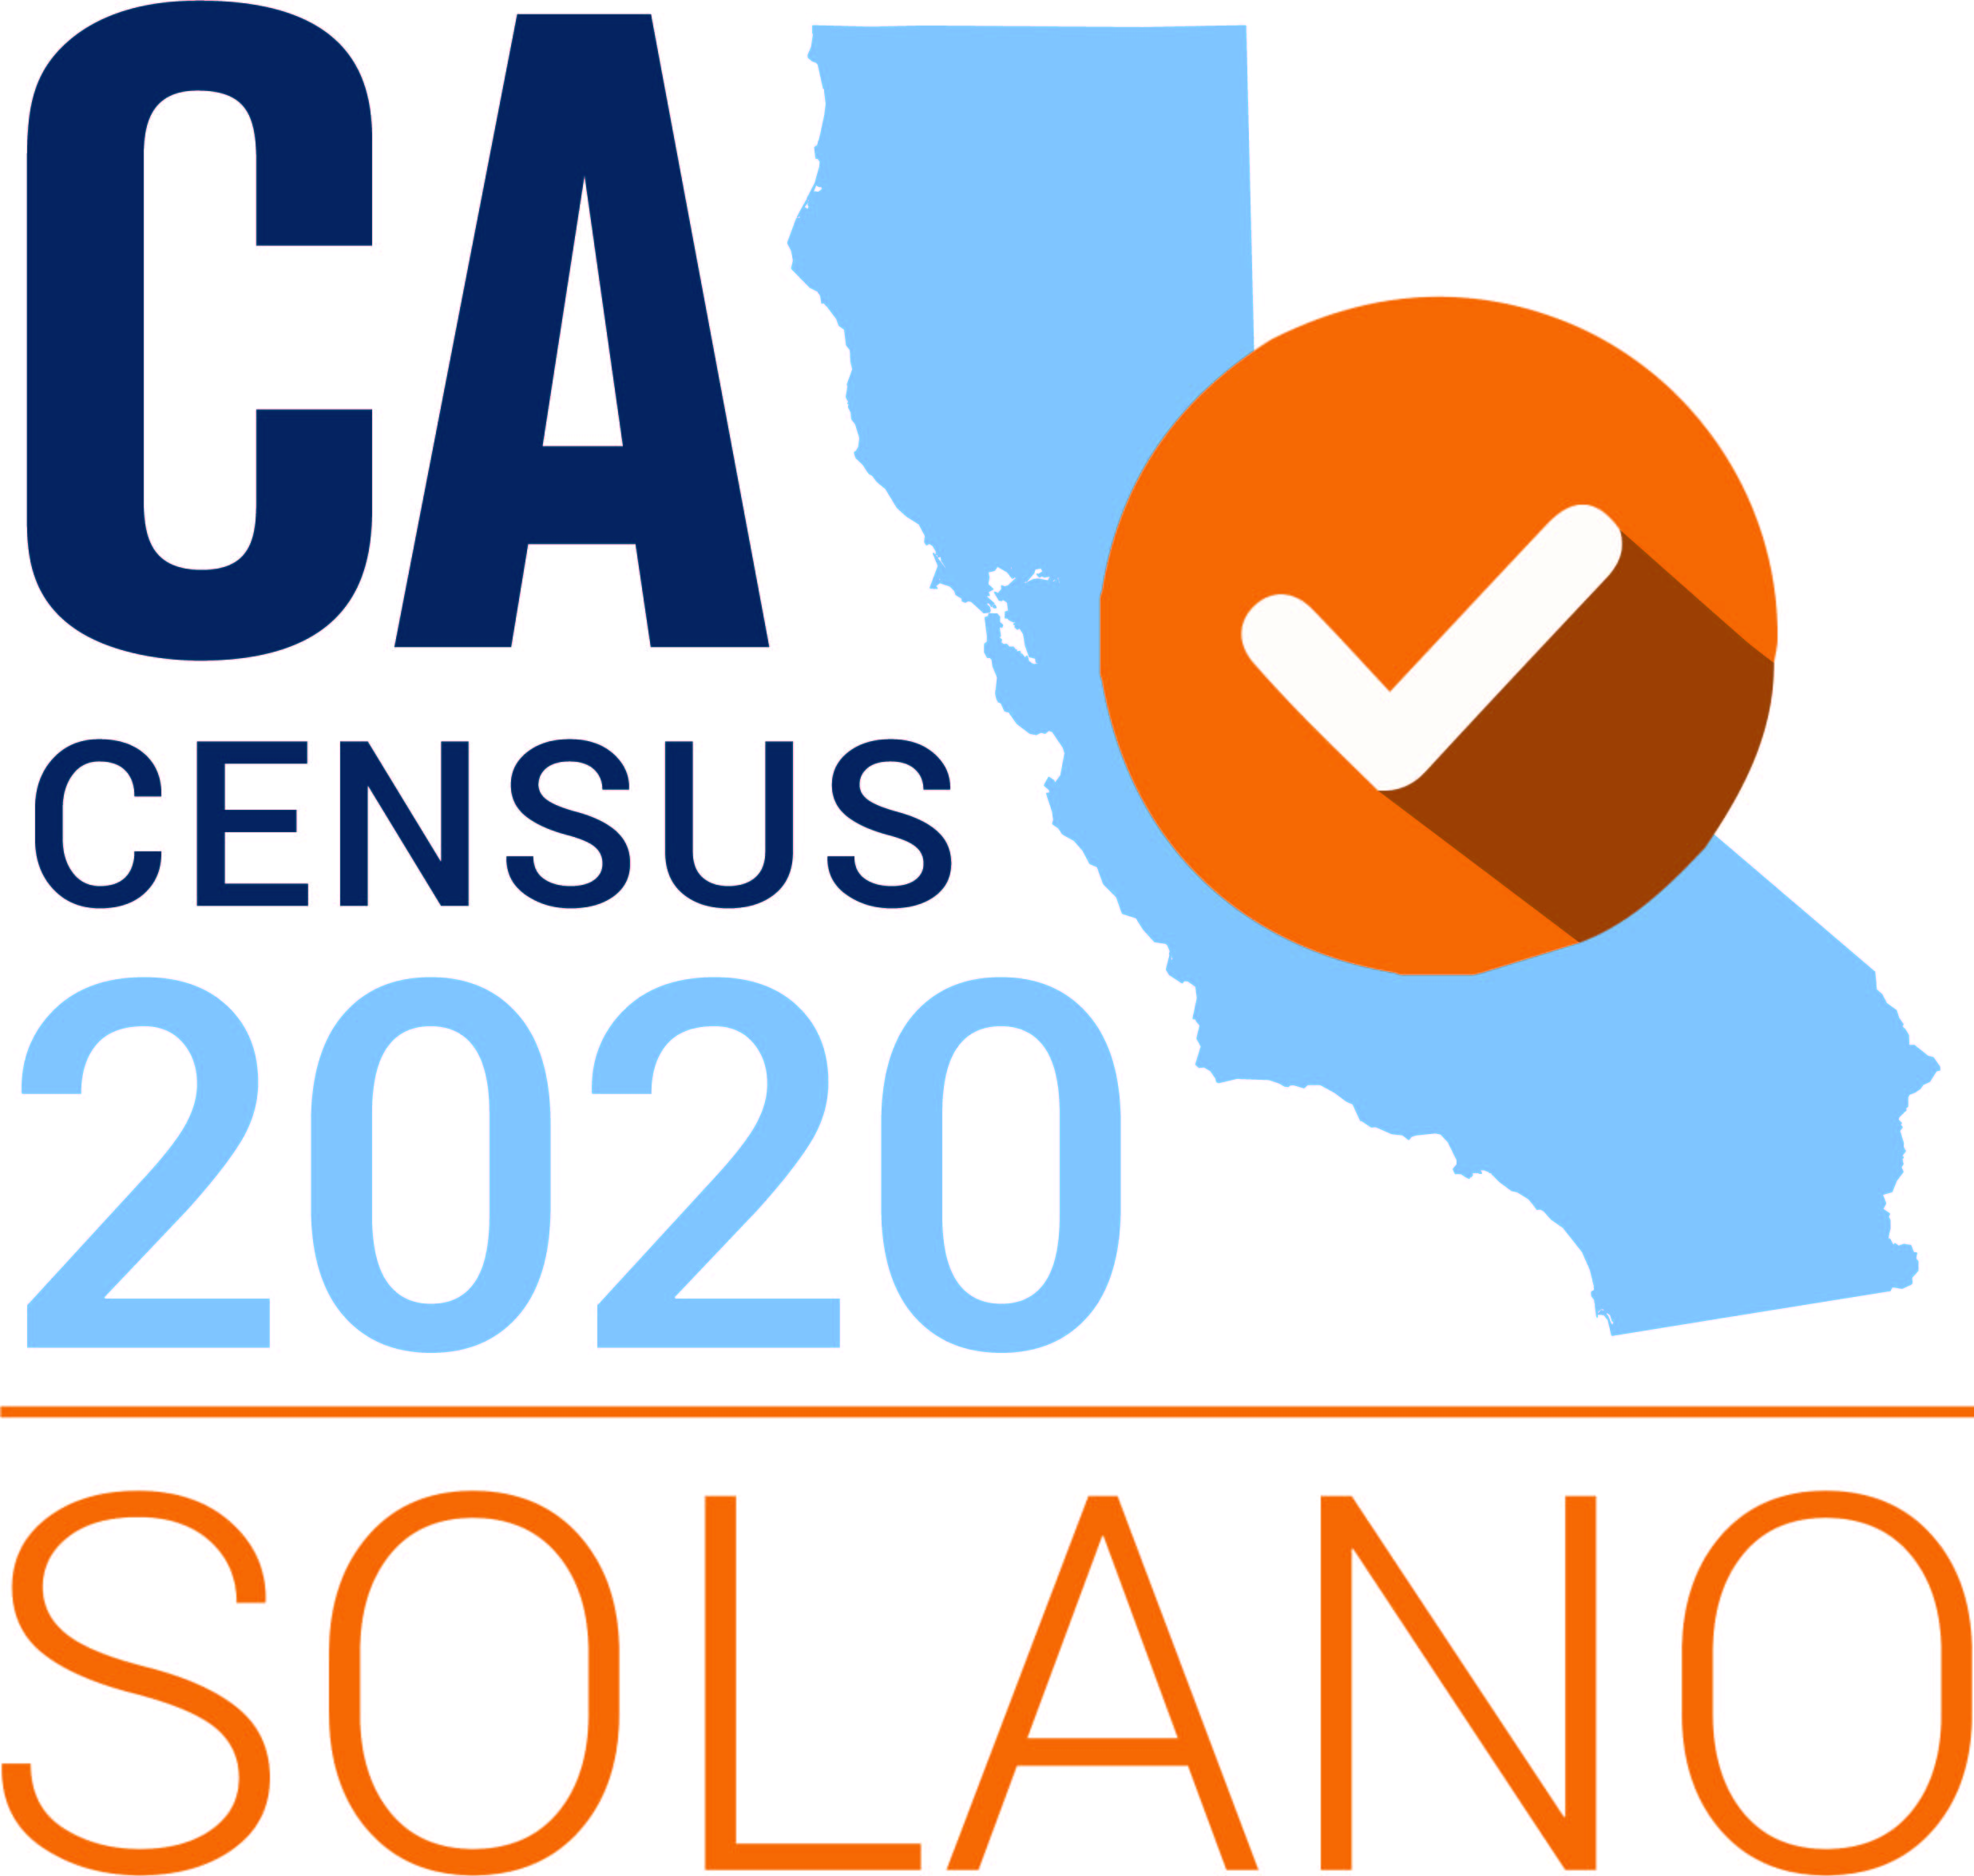 Census Bureau Statement on 2020 Census  Data Collection Ending blog featured image